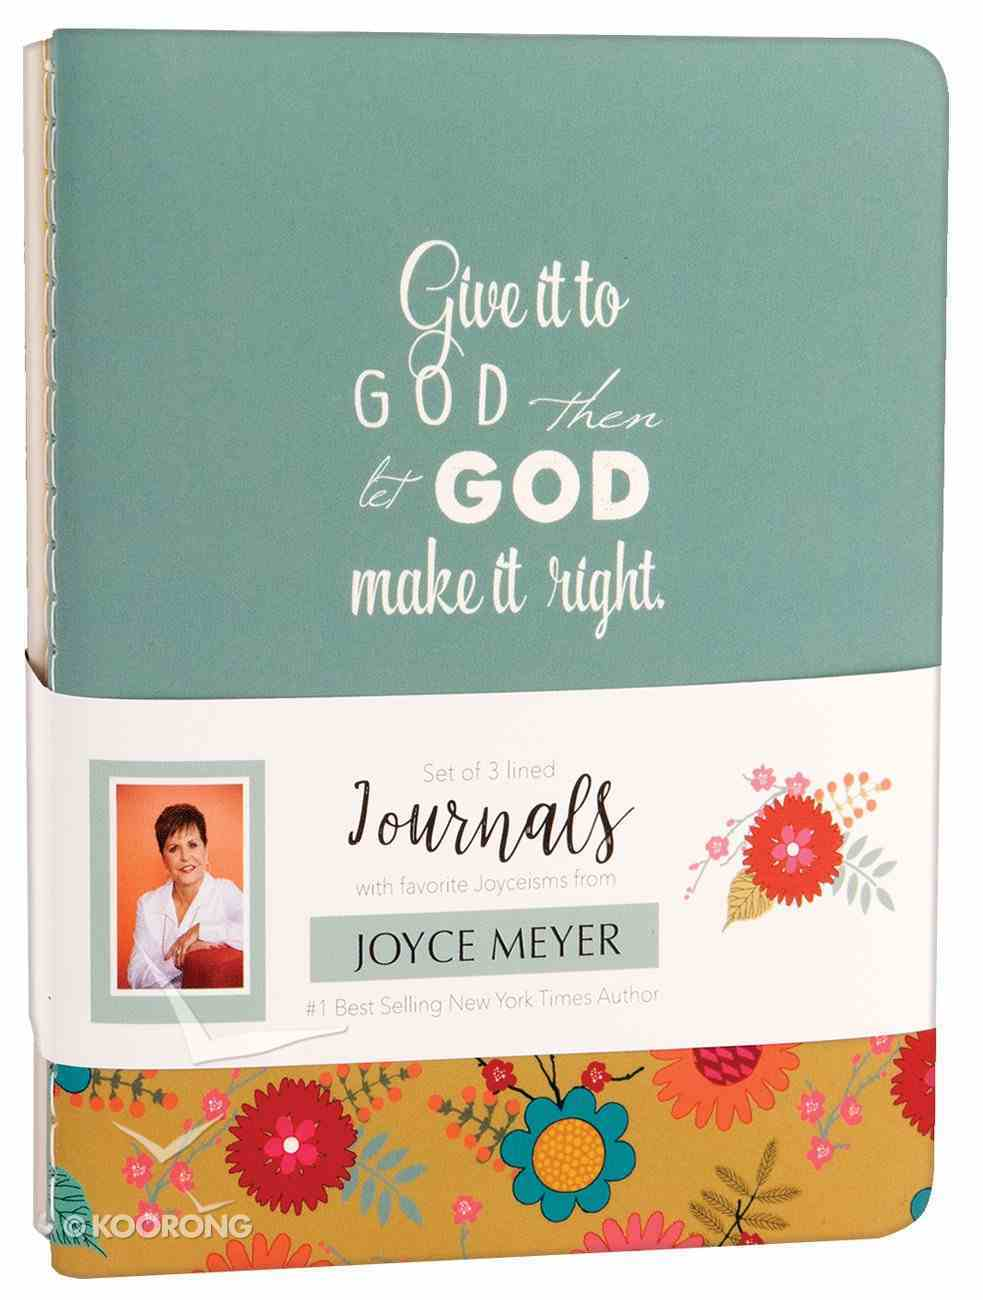 Joyce Meyer Journal 3 Pack: Give It to God, Green/White/Yellow Floral Stationery